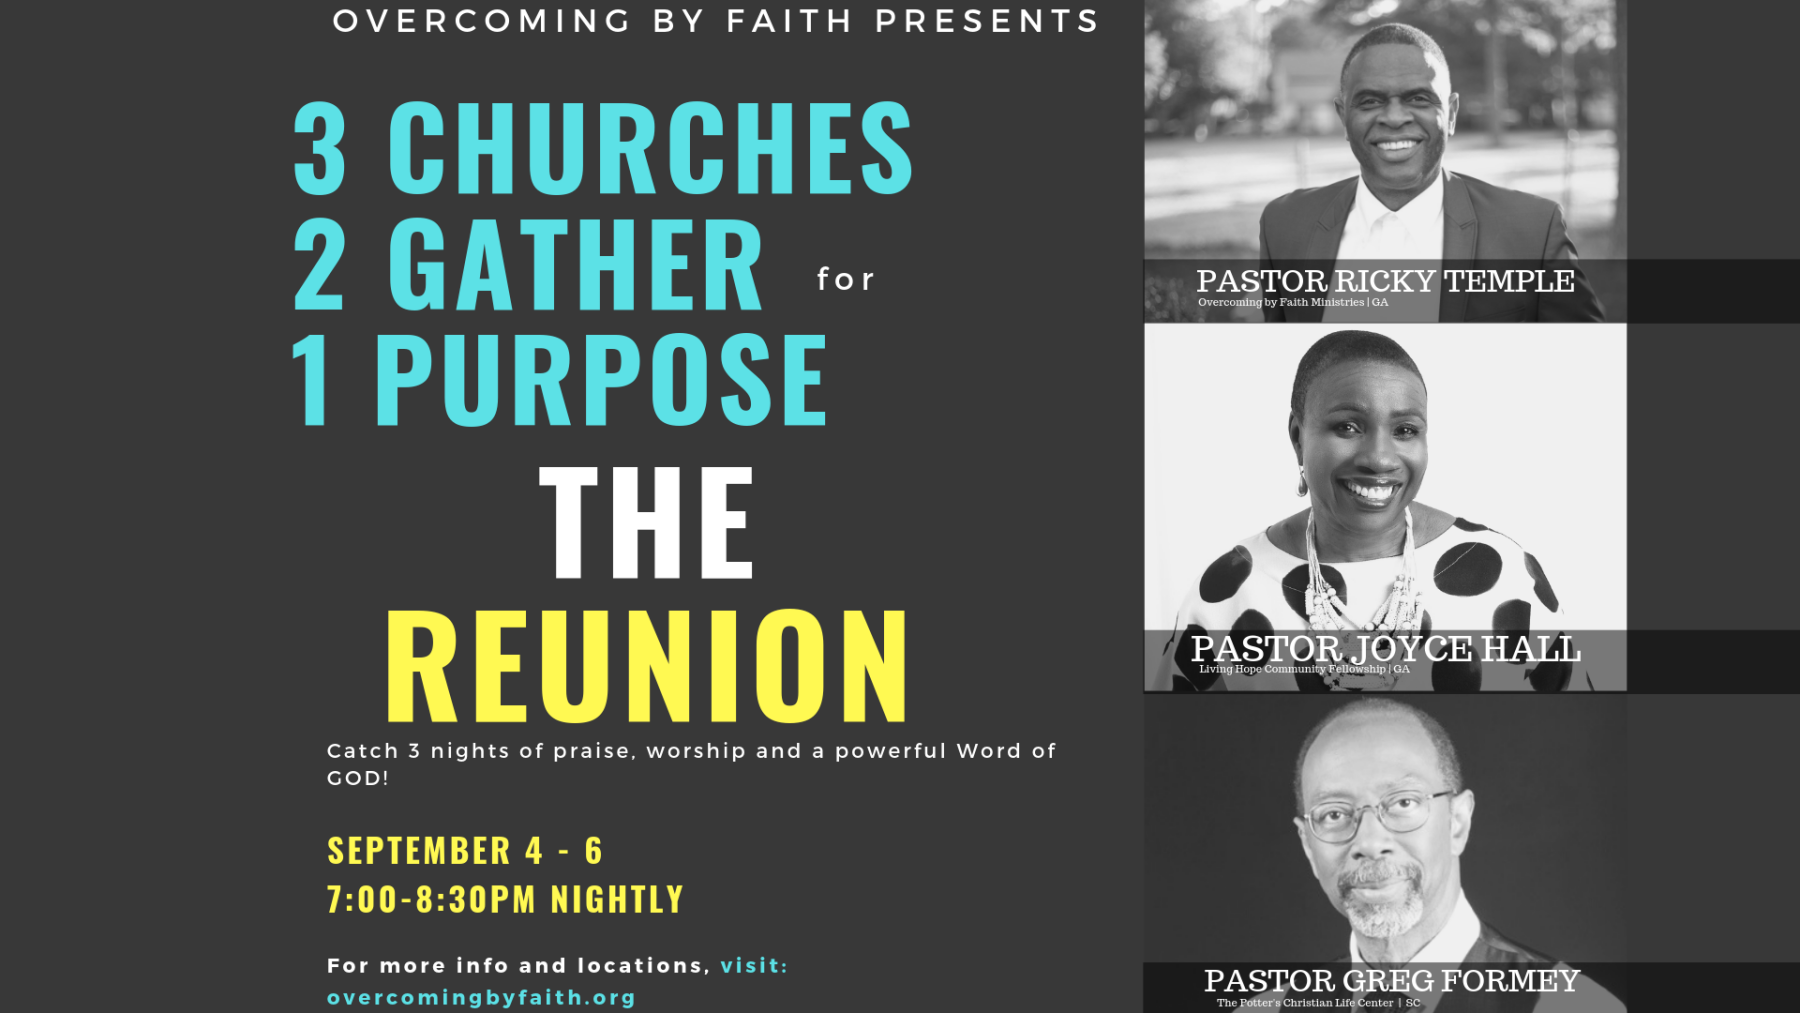 The Reunion: 3 Churches. 2 Gather for 1 Purpose